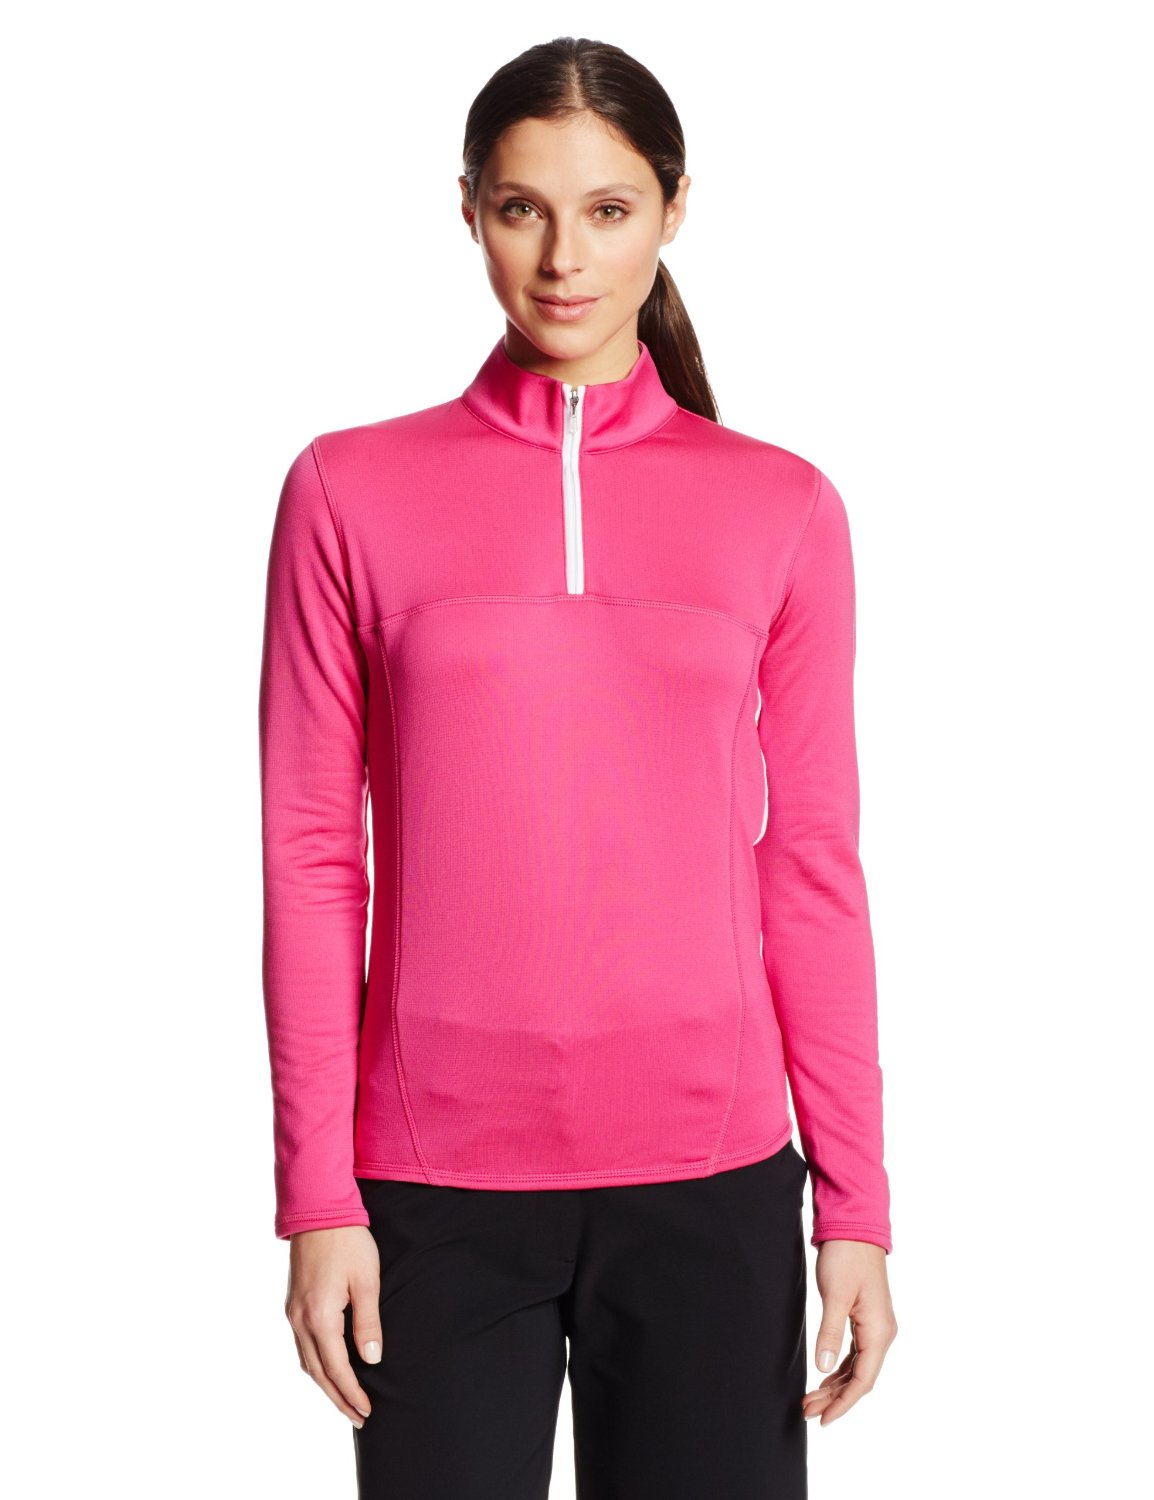 Adidas Womens Golf Pullovers